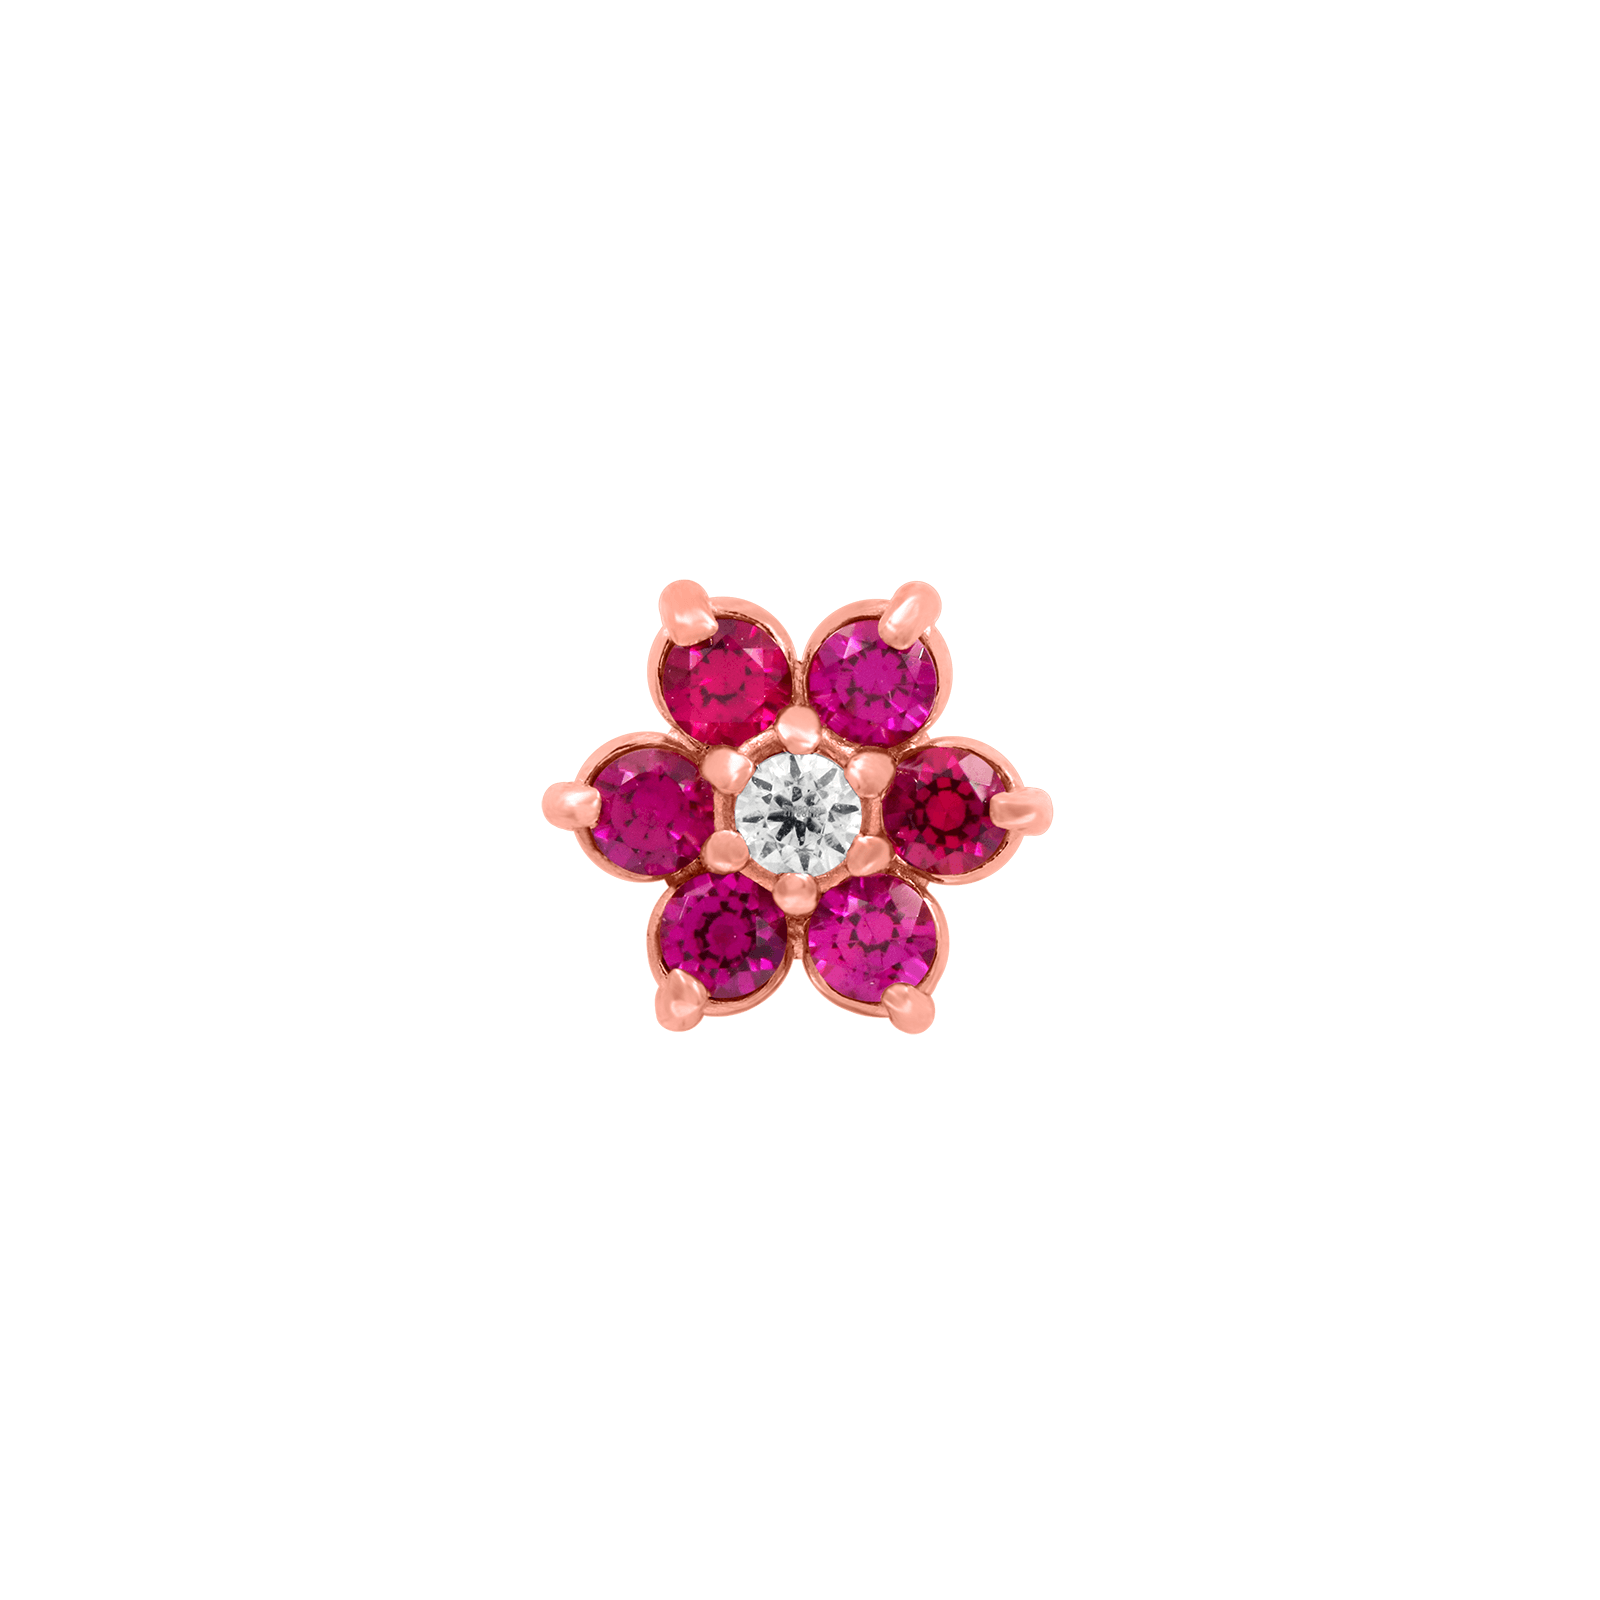 Flower Ruby CZ End in 18k Rose Gold by Anatometal - Pierced